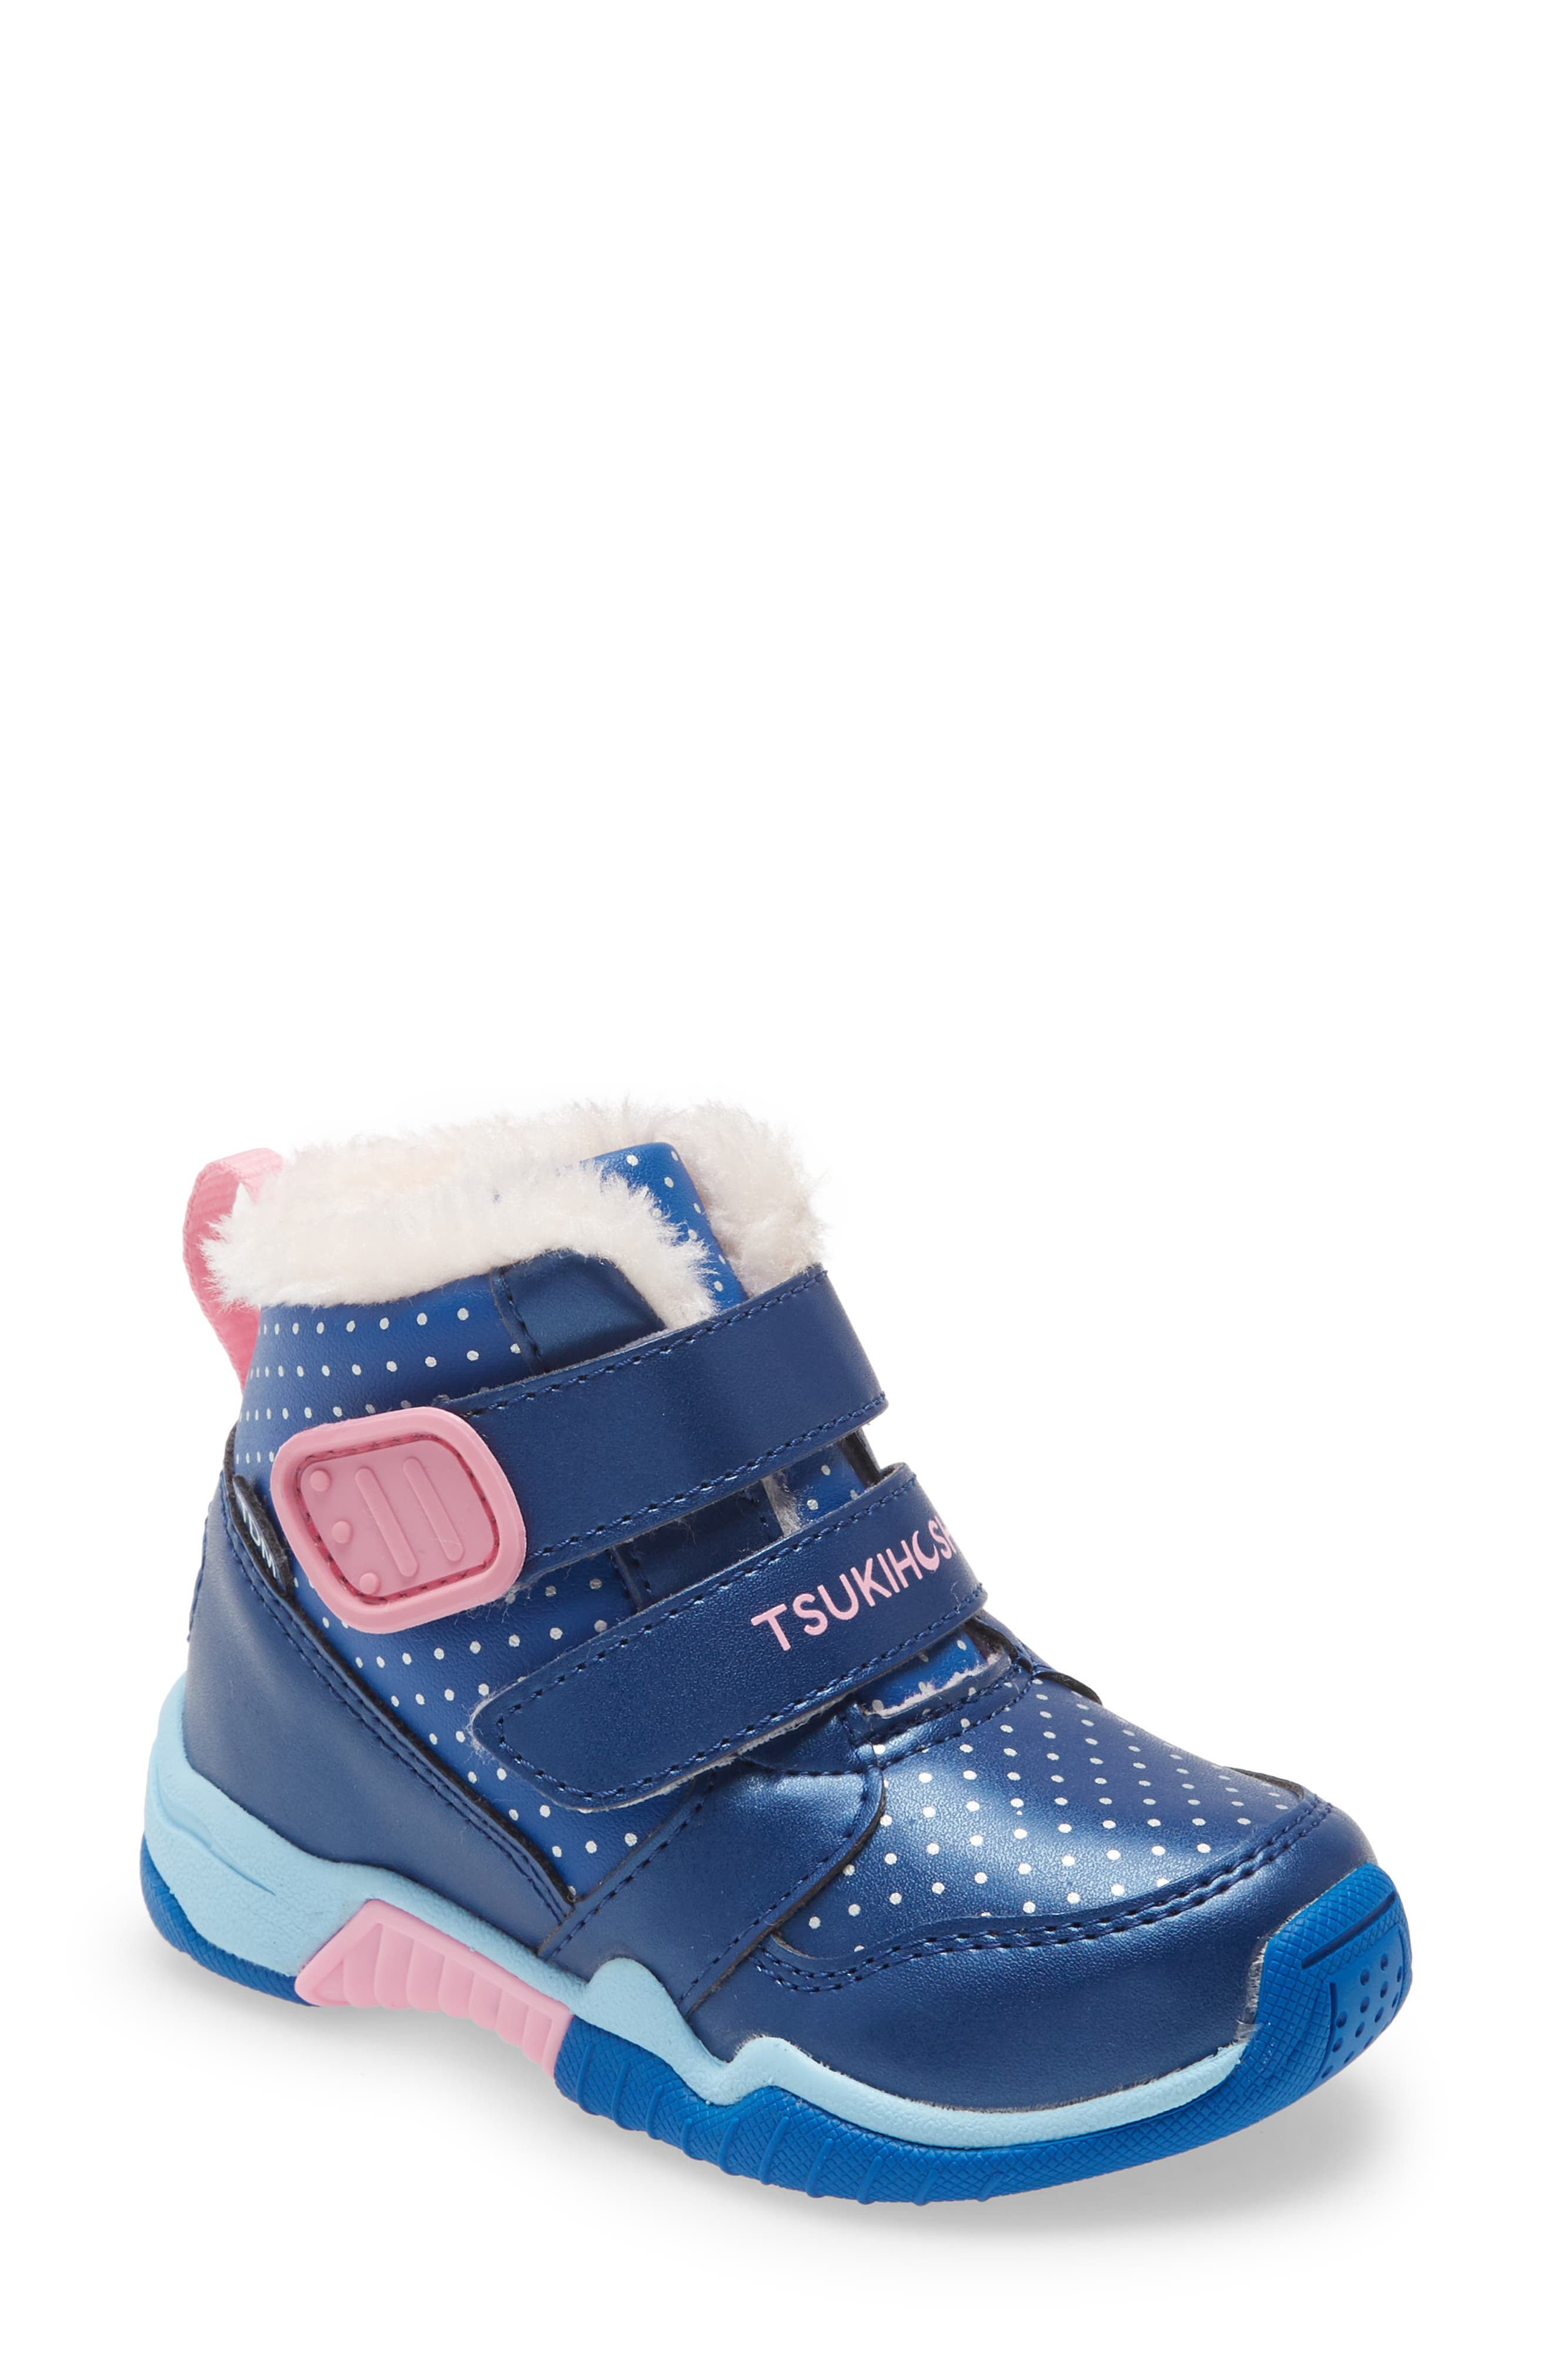 Plush faux fur warms the interior of this waterproof boot designed with a roomy toe box to allow little toes to wiggle and stretch, just like they would barefoot. A firm heel provides stability and protects from overpronation, while the light, flexible sole promotes natural movement. Style Name: Tsukihoshi Kids\\\' Igloo Waterproof Sneaker Boot (Walker, Toddler & Little Kid). Style Number: 6145533. Available in stores.